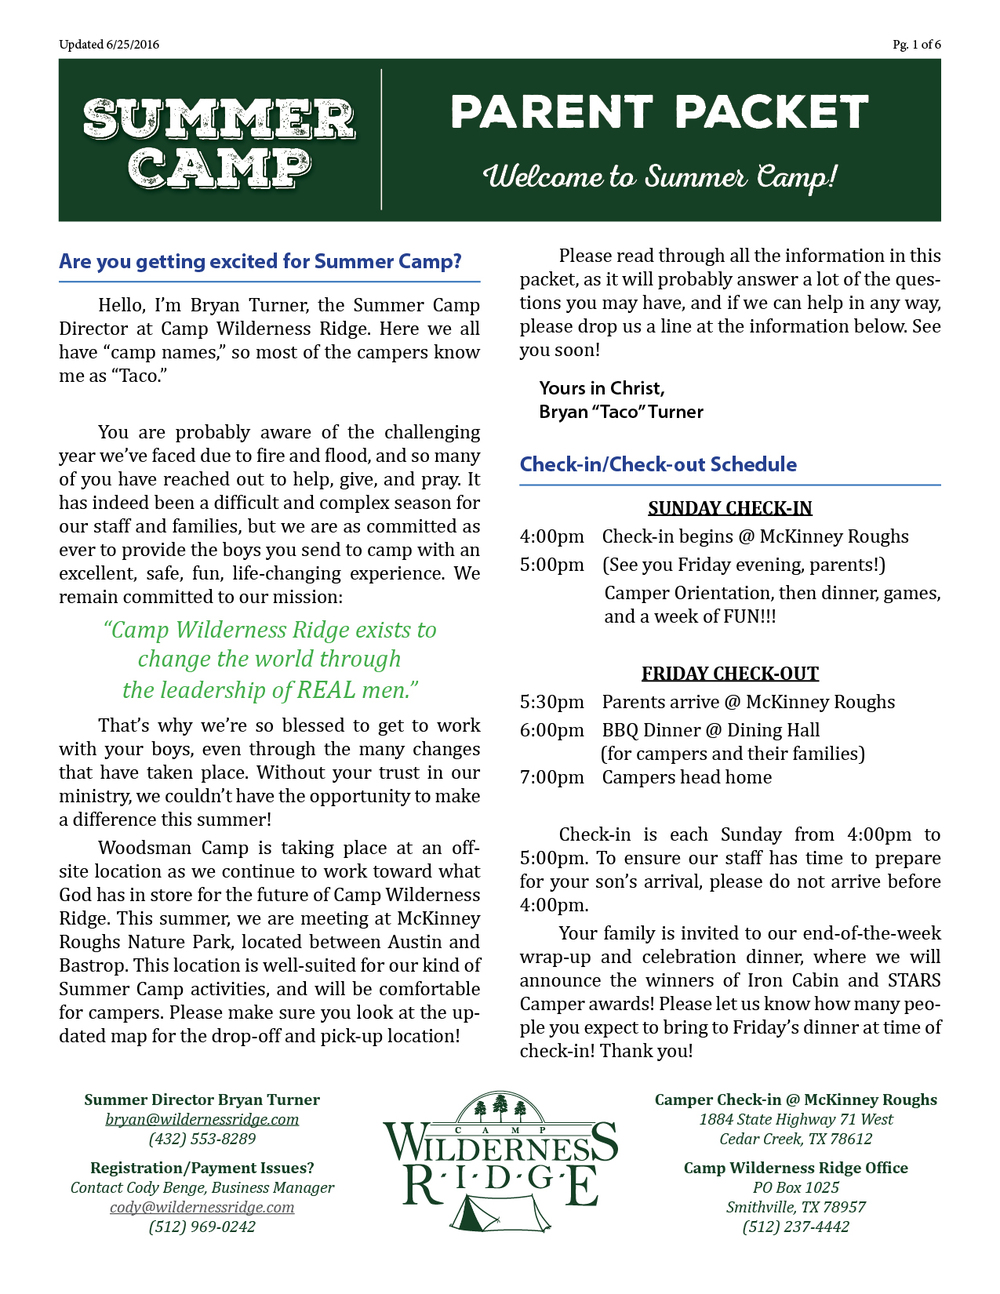 2016 Summer Camp - Parent Packet.jpg